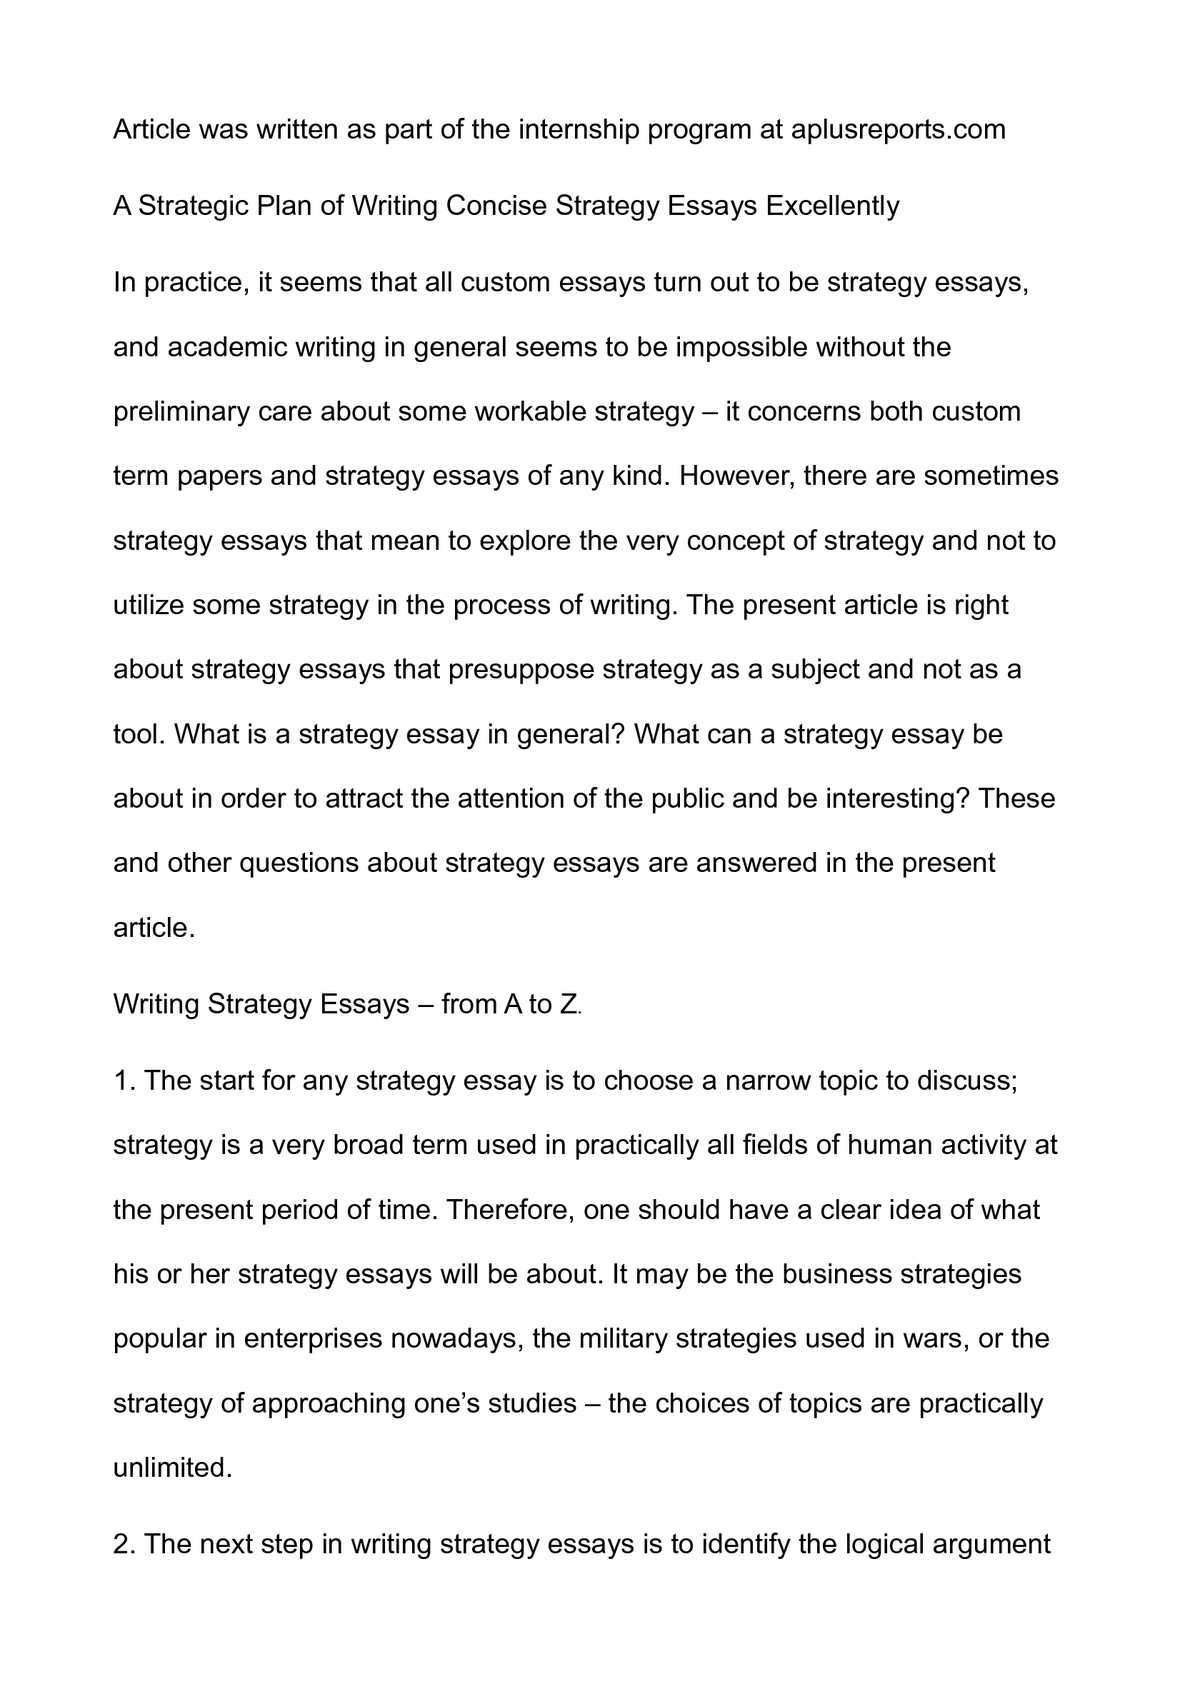 calamo  a strategic plan of writing concise strategy essays  calamo  a strategic plan of writing concise strategy essays excellently